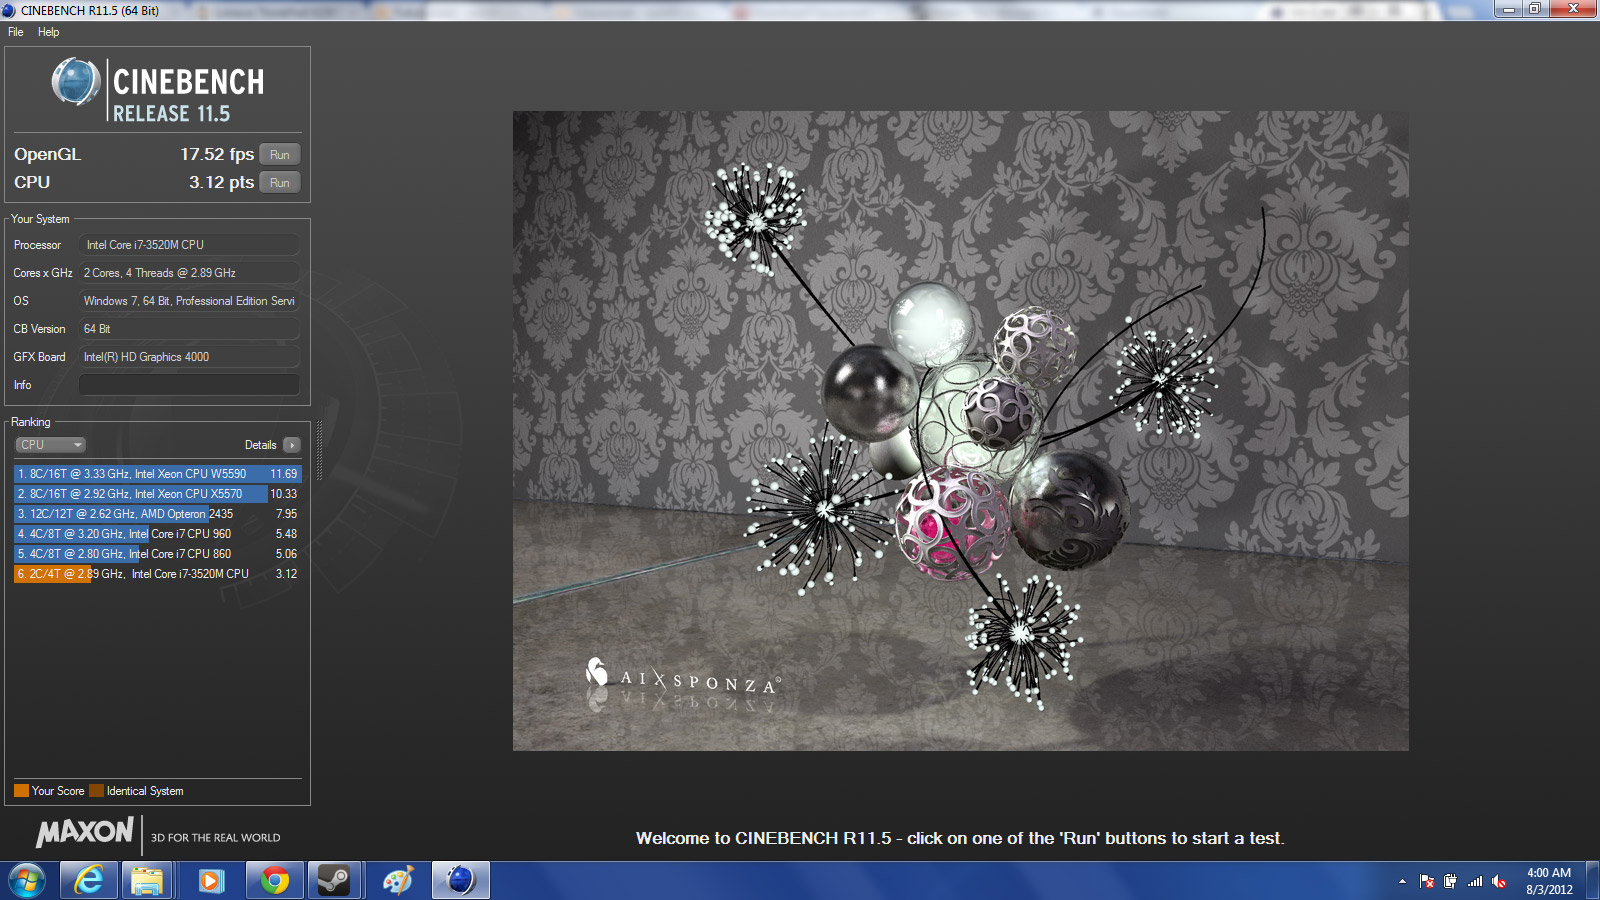 big_e6530-cinebench-score.jpg